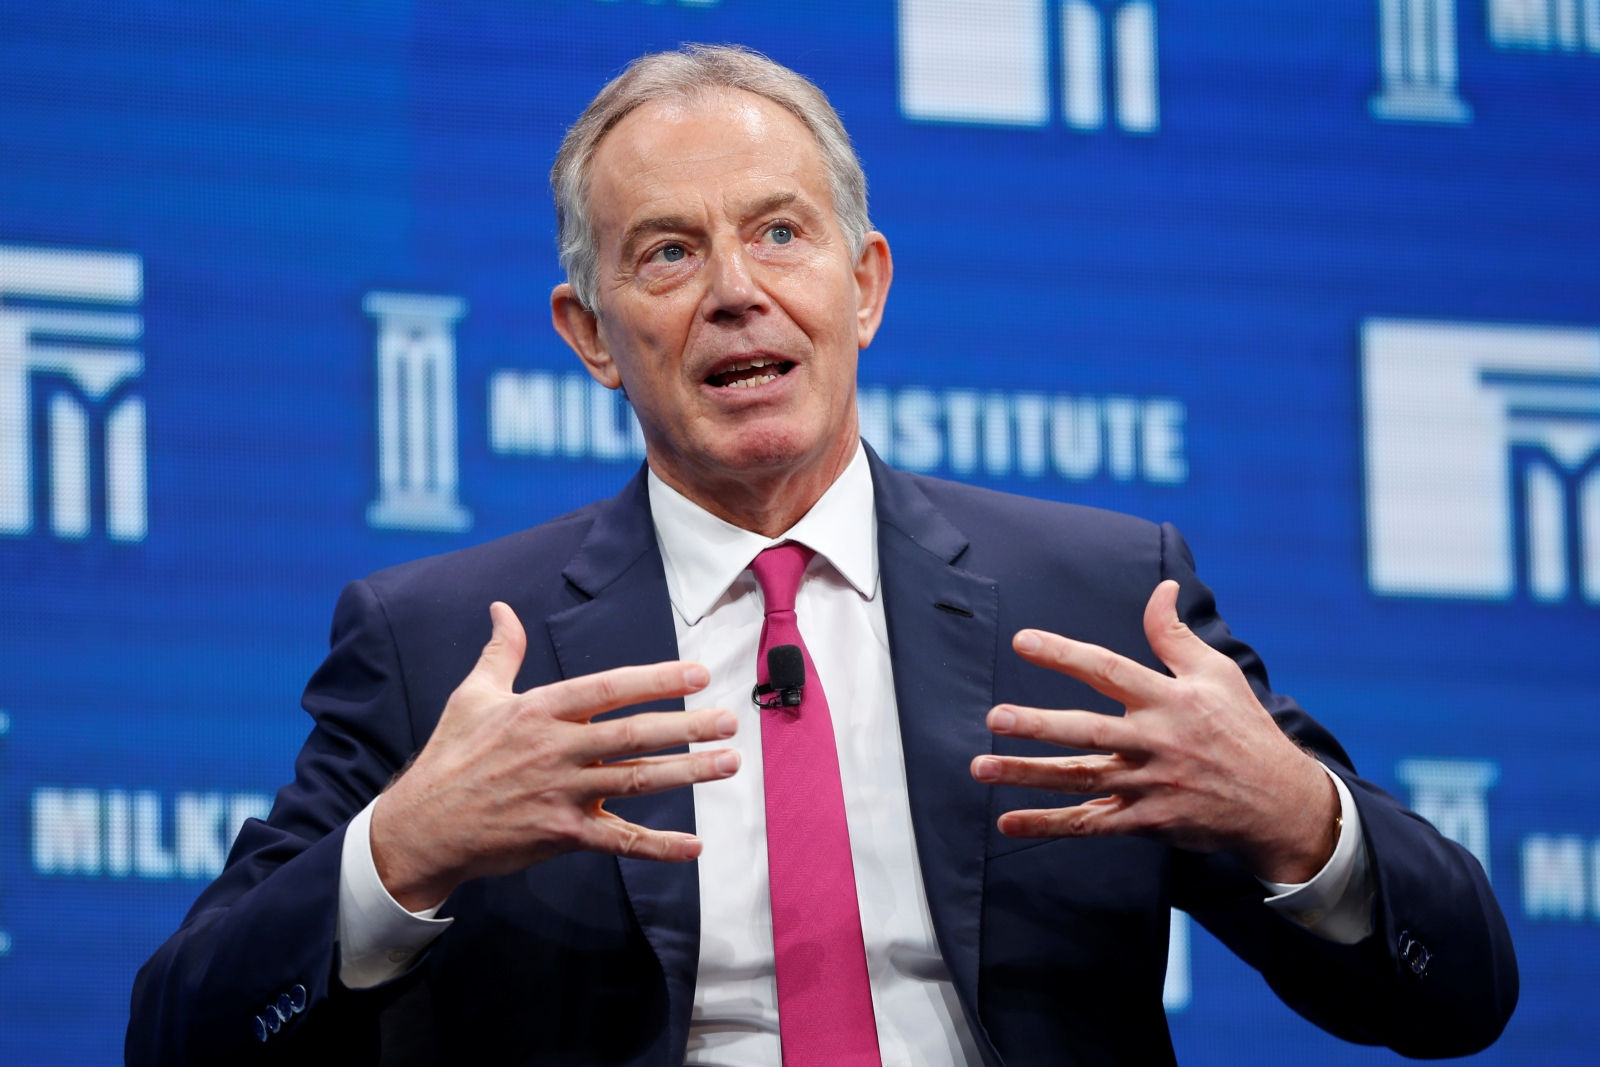 tony blair prime minister or president Former british prime minister tony blair visited president barrow on friday, 1st april 2017 and had a private discussion with him prior to that his delegation of three other officials and the gambian officials, the minister of foreign affairs, international cooperation and gambians abroad, honourable ousainou darbo, his permanent.